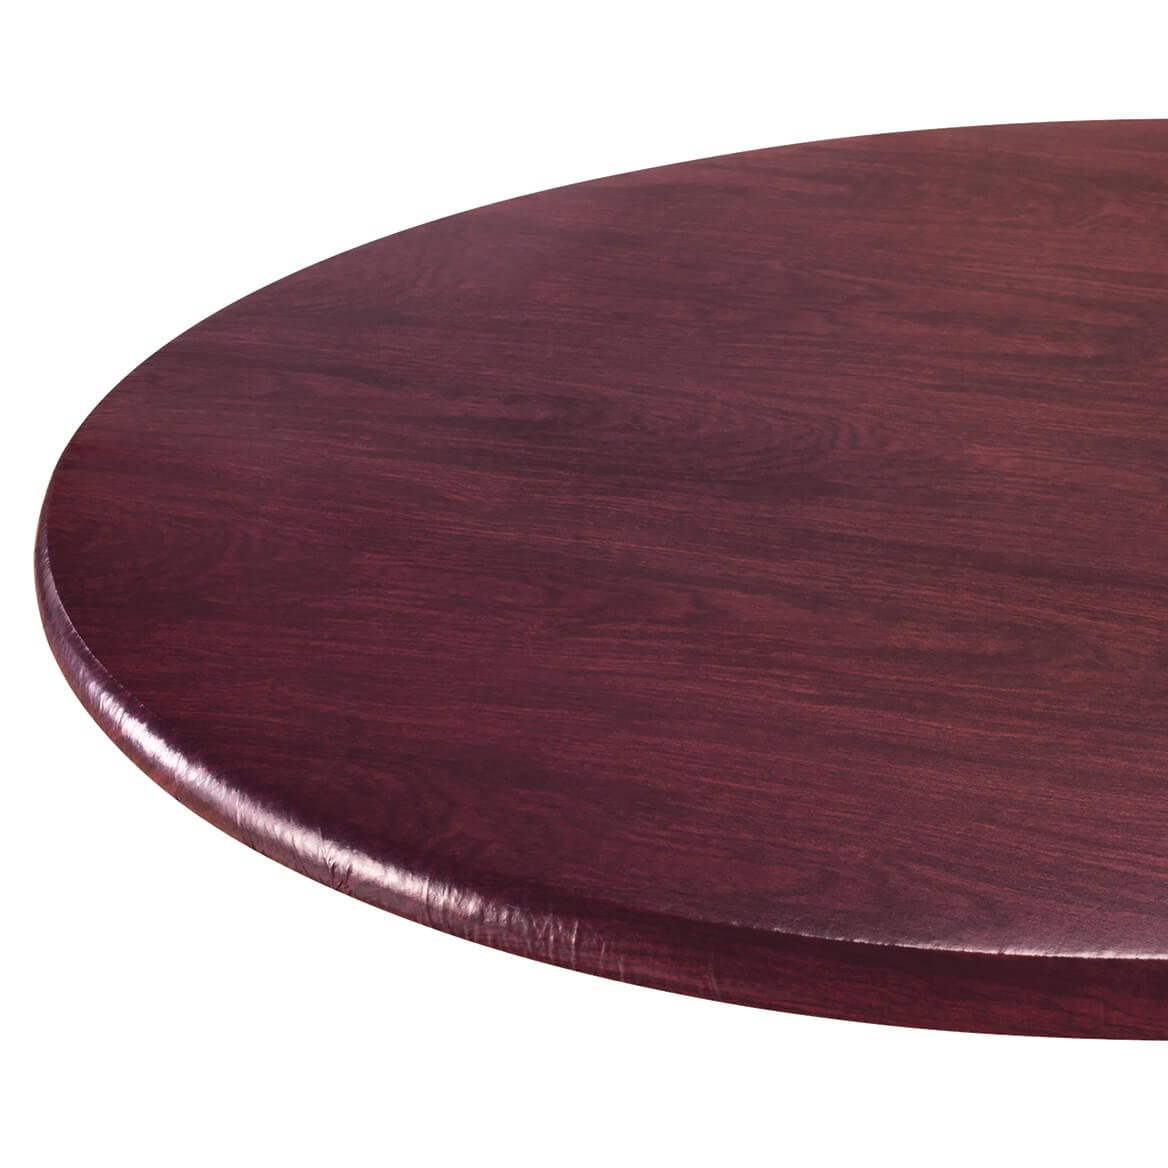 Wood Grain Vinyl Elastic Table Cover by Miles Kimball (Image #1)